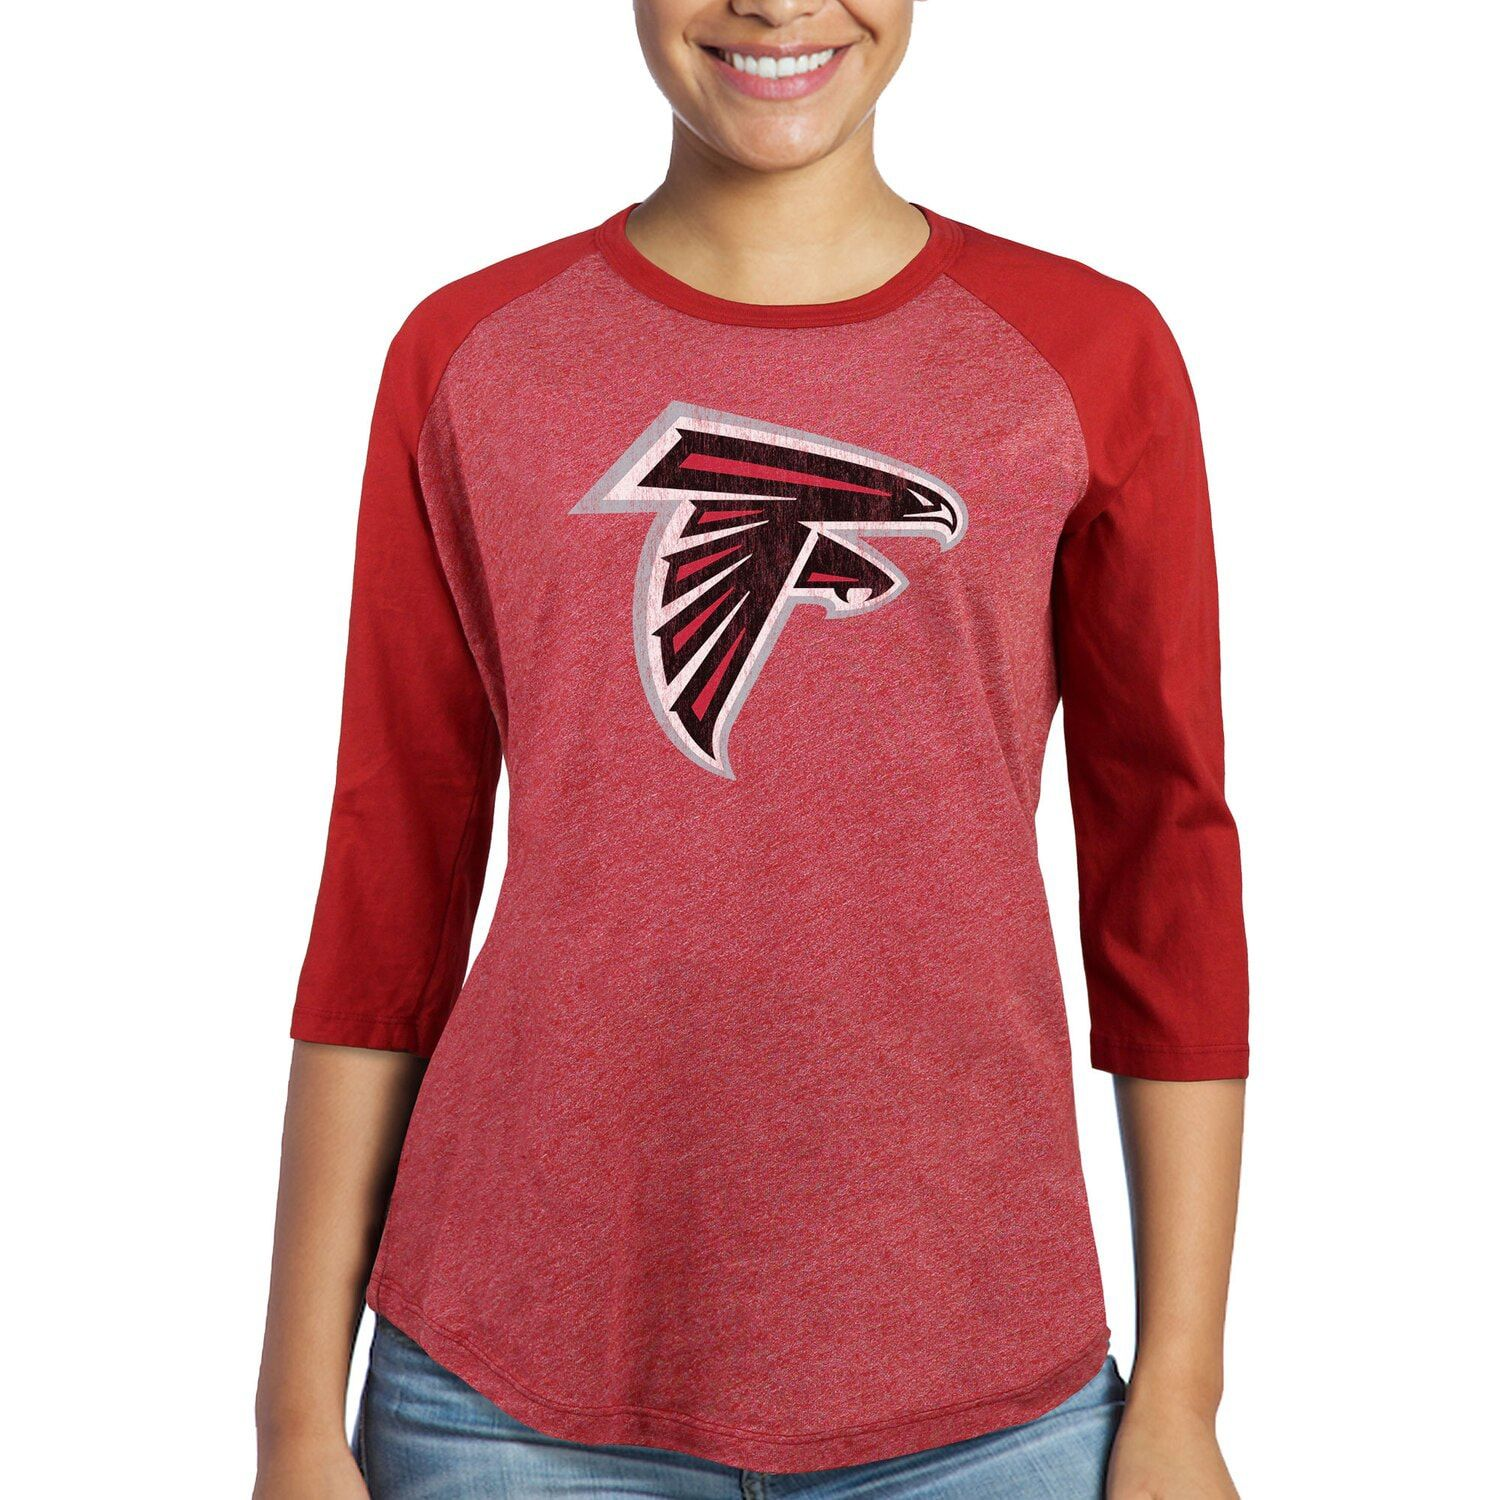 Women S Majestic Julio Jones Red Atlanta Falcons Player Name Number Tri Blend Three Quar With Images Long Sleeve Tshirt Men Atlanta Falcons Players Three Quarter Sleeves